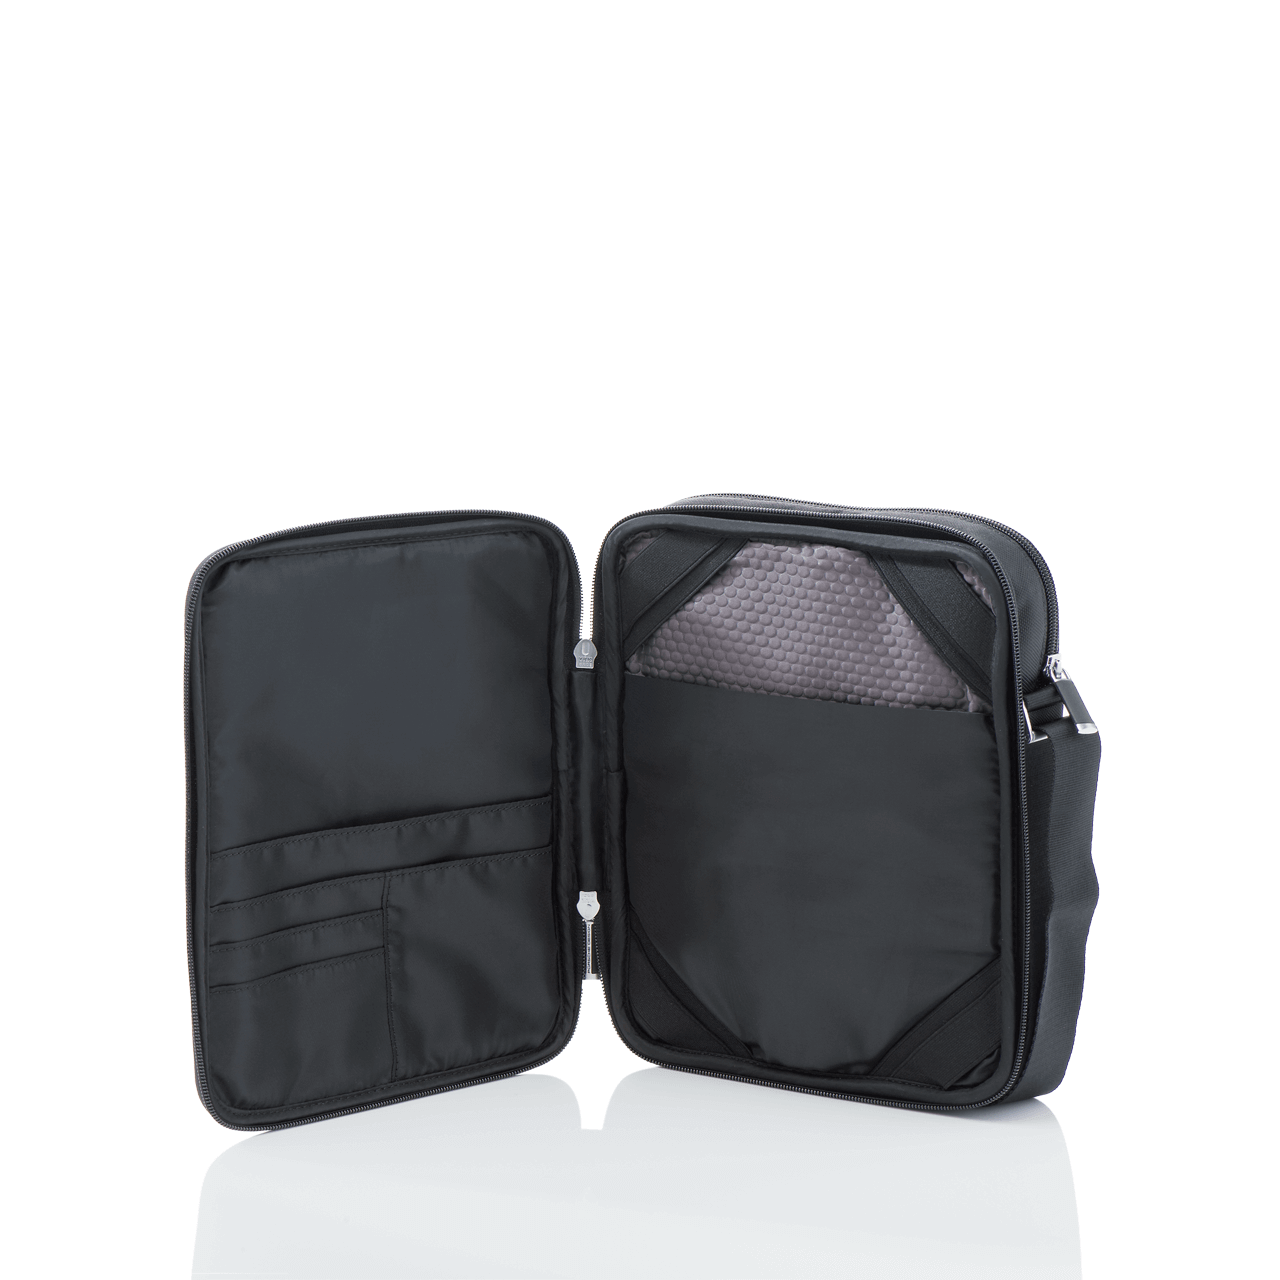 ROADSTER SOFTCASE SERIES SHOULDERBAG MV - фото 2